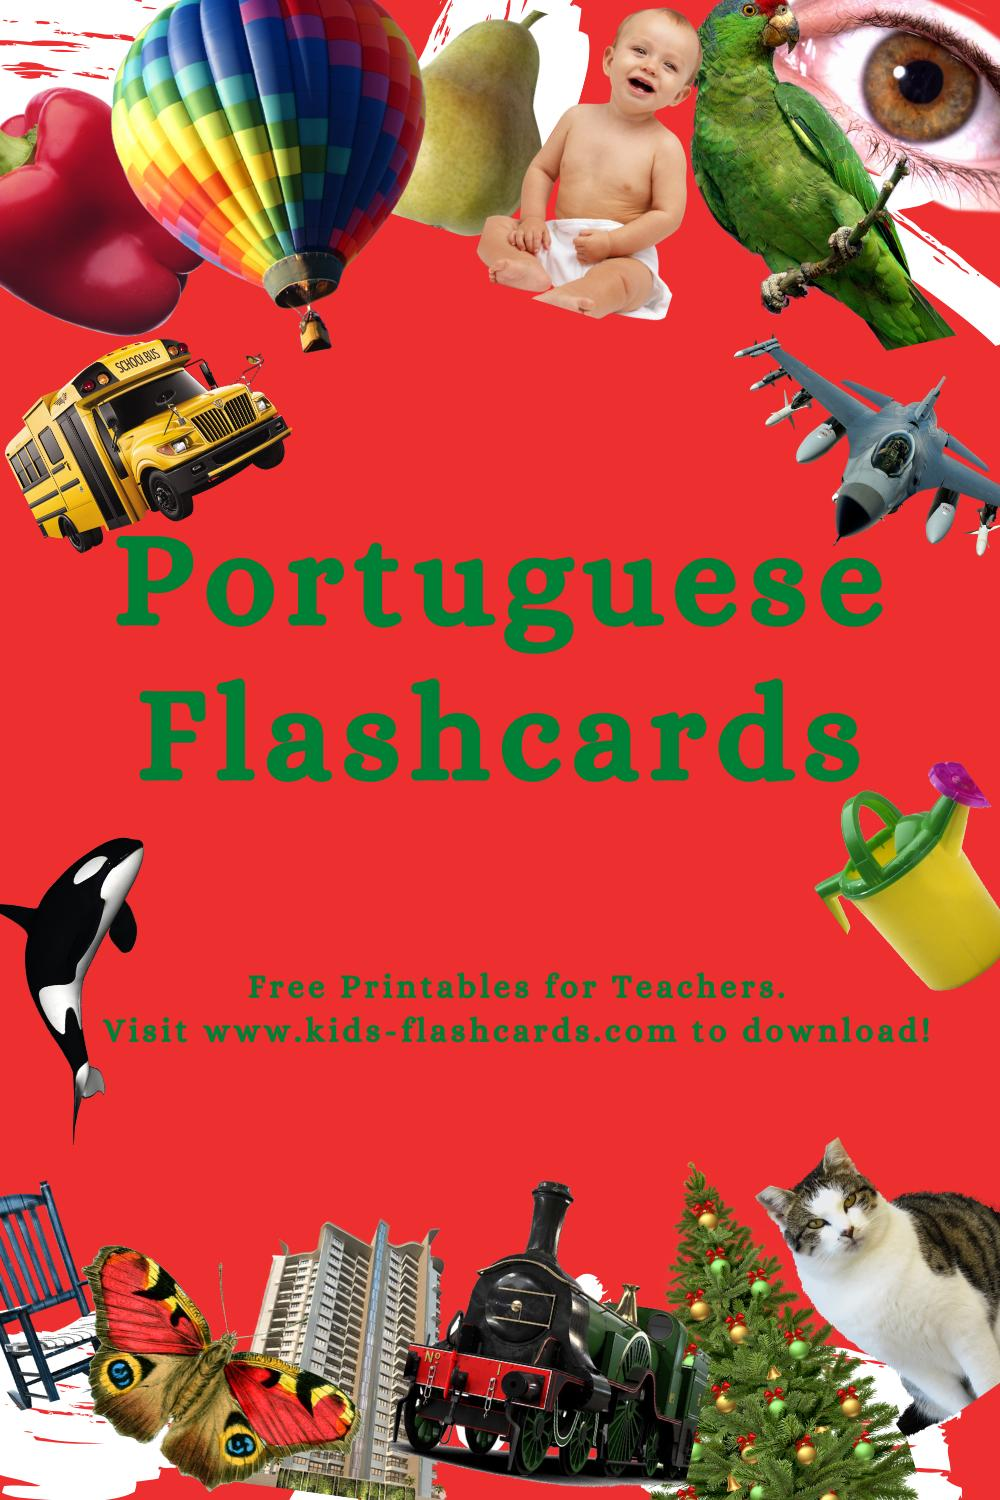 Worksheets to learn Portuguese language